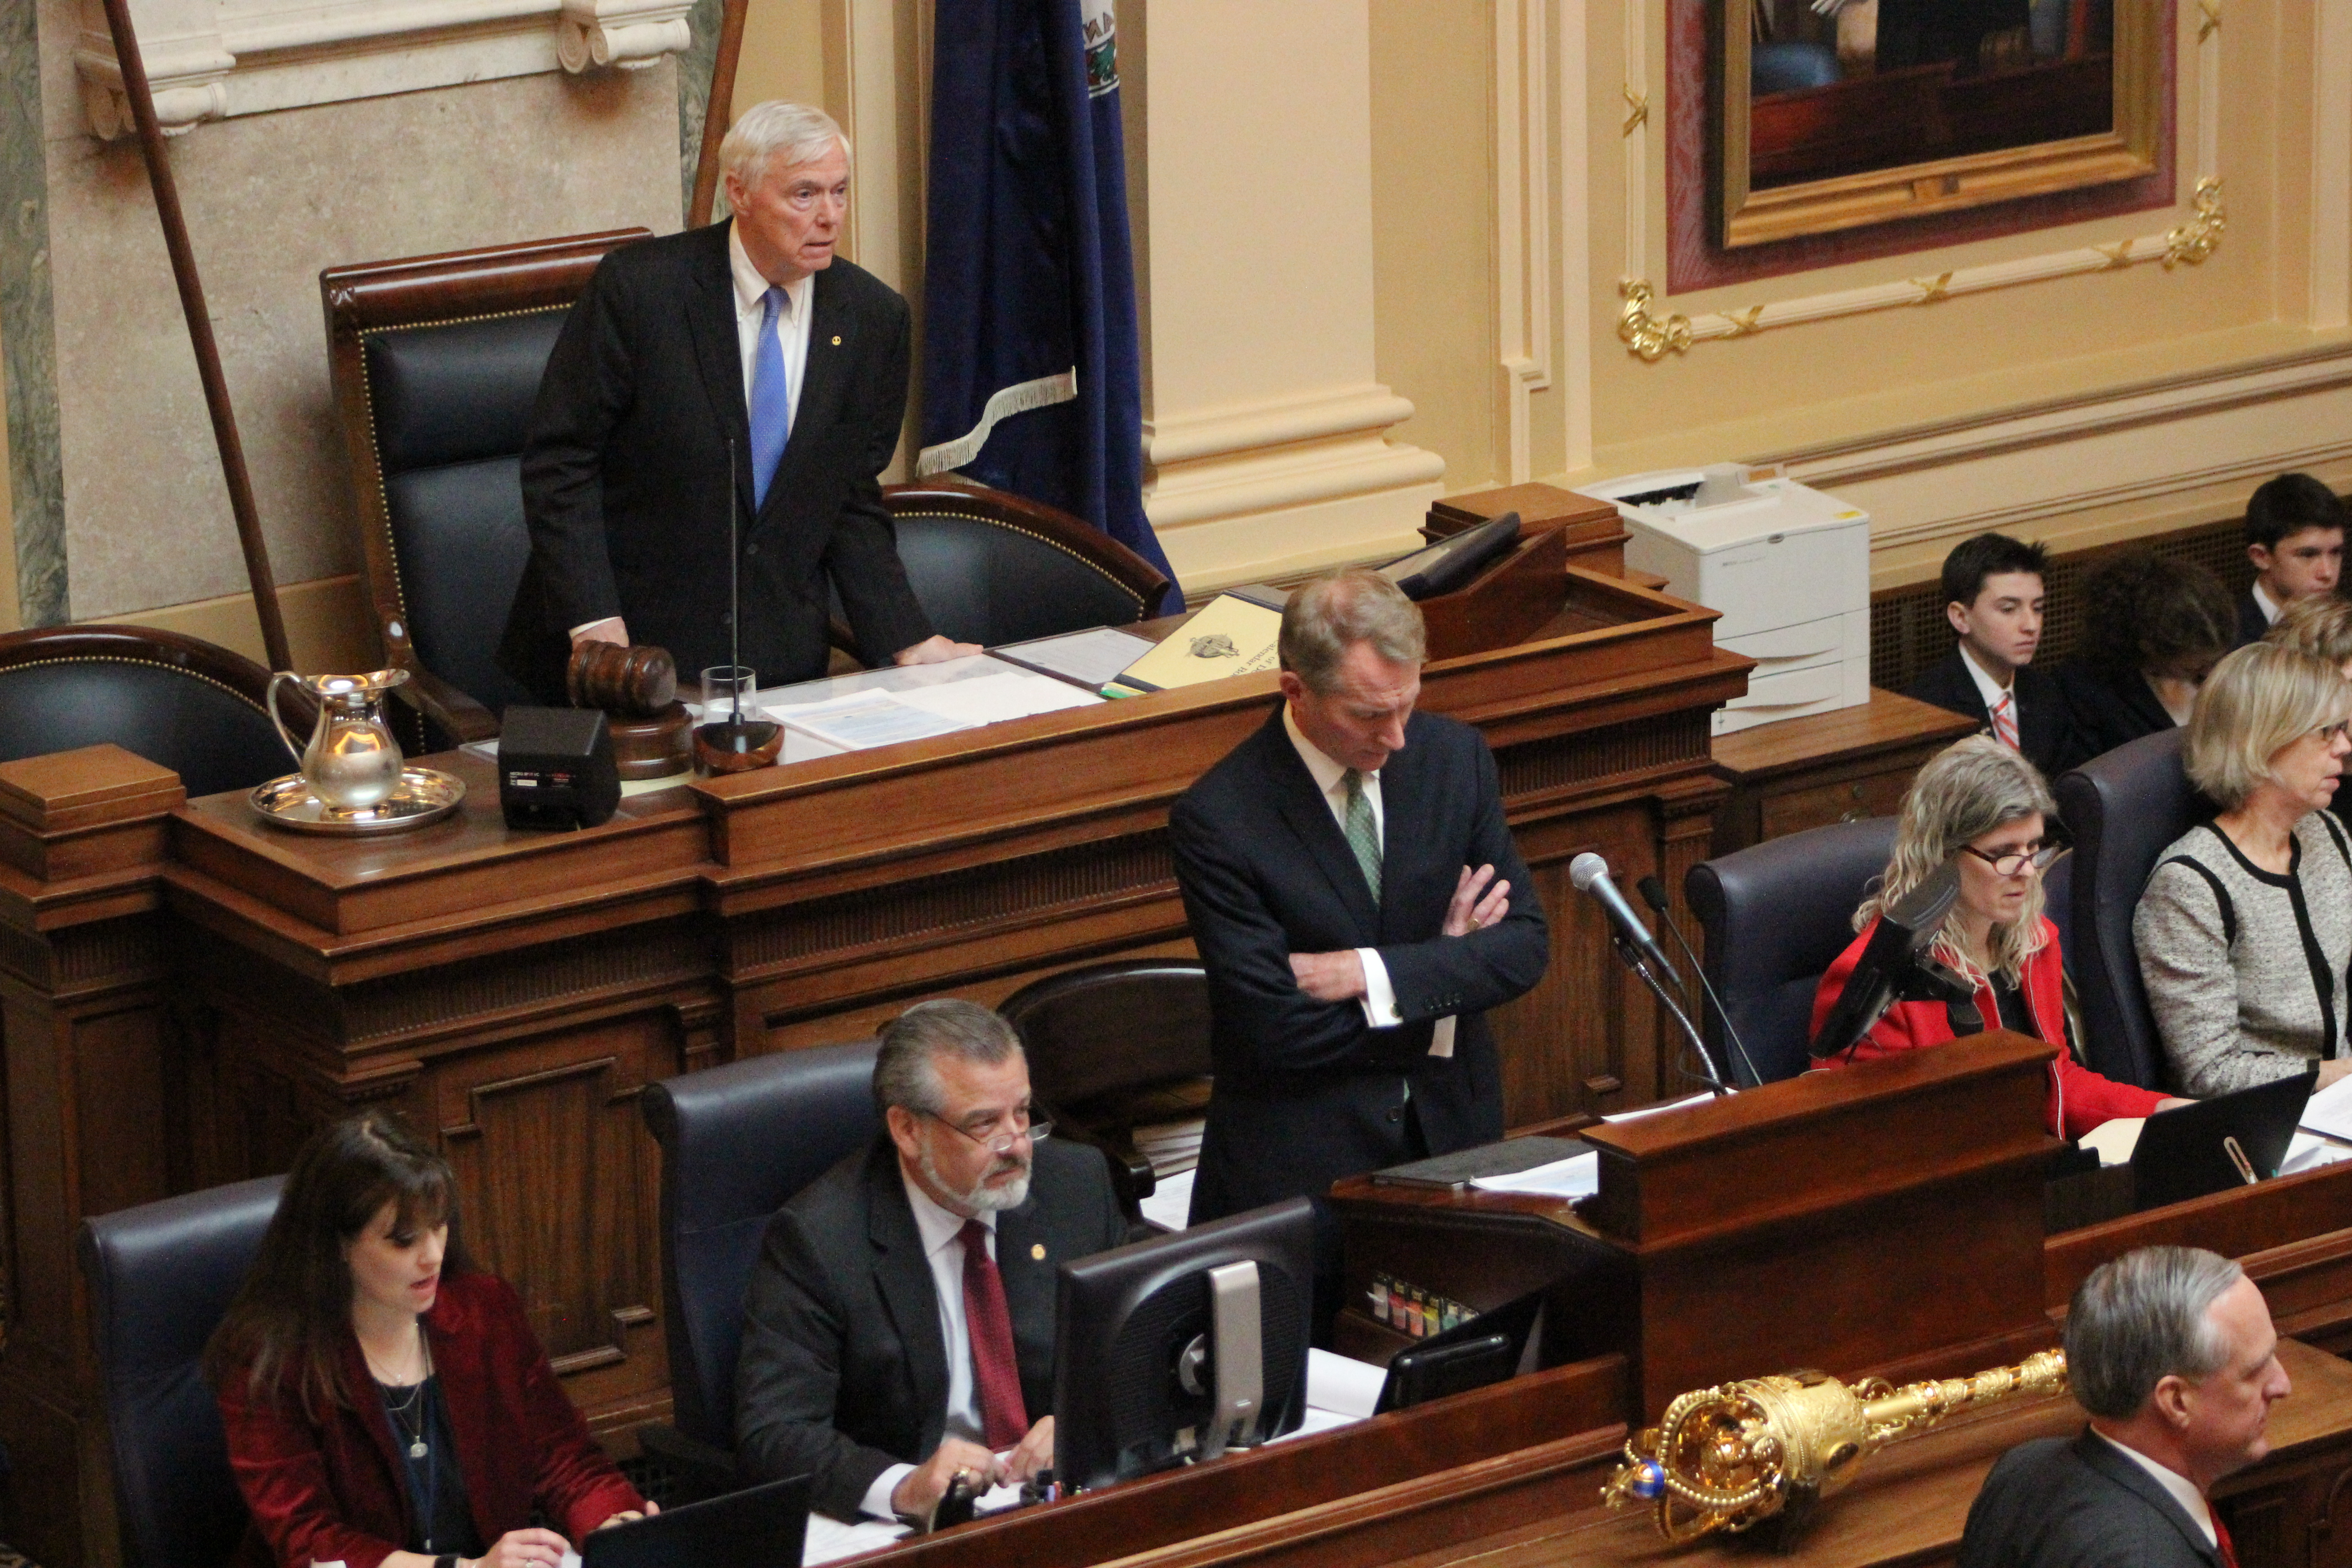 House Speaker Bill Howell calls to order the Virginia House of Delegates. Photo by Mary Lee Clark.